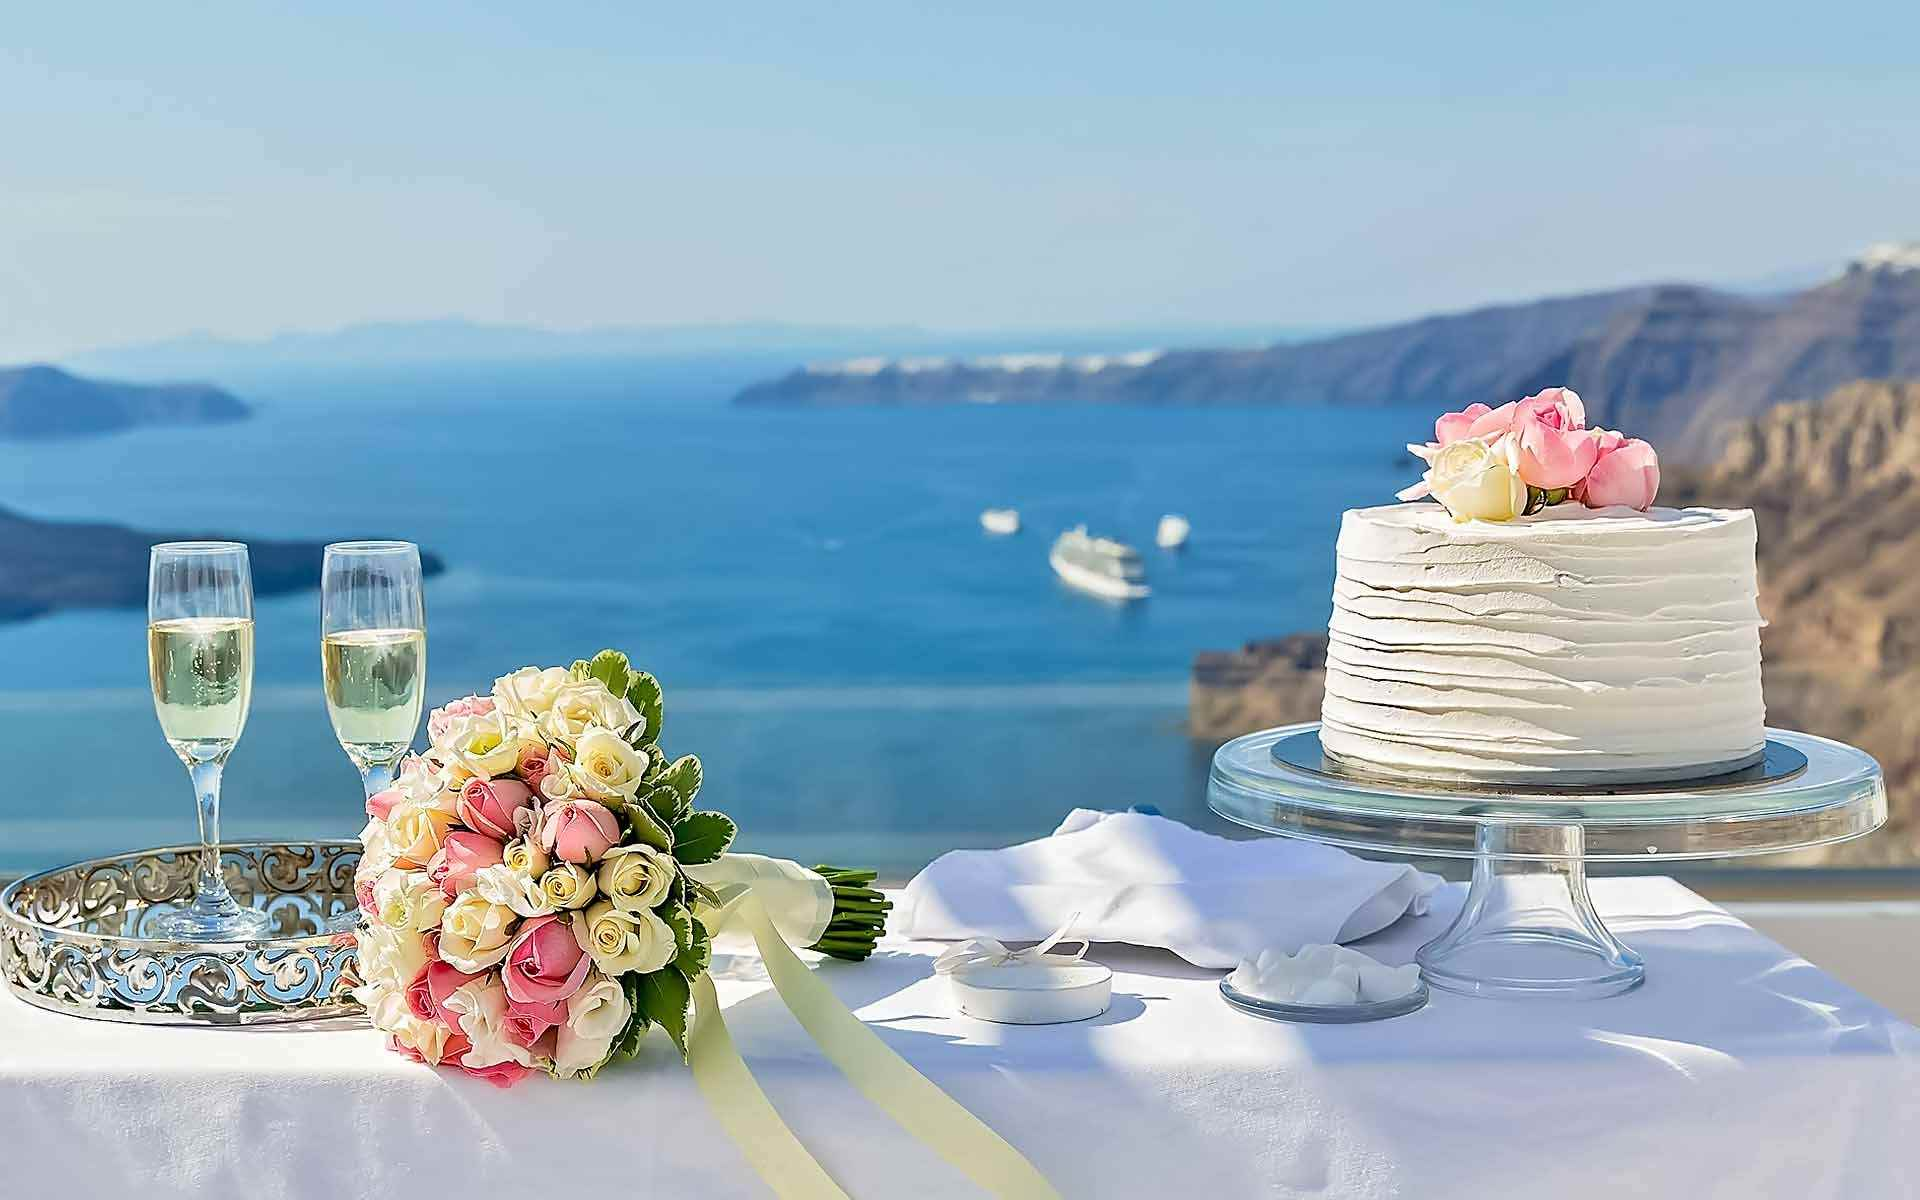 A-Breathtaking-View-And-Champagne-For-Two-Perfect-Spot-For-Newlyweds-Cake-Cutting